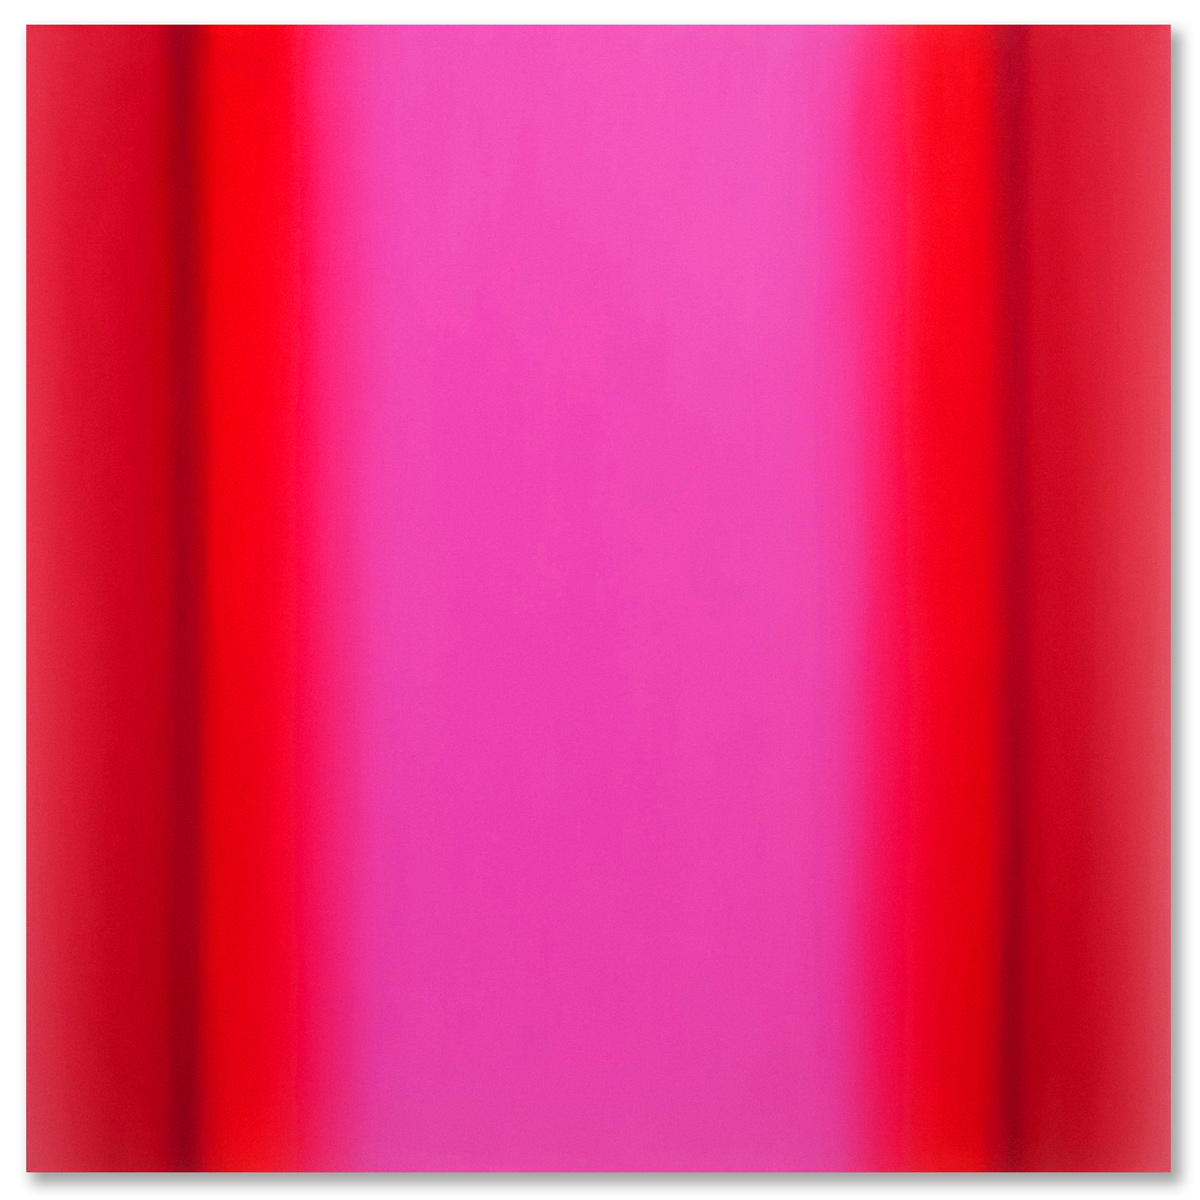 Matter of Light 14-S4848 (Red Magenta), Matter of Light Series, 2016, oil on canvas on custom beveled stretcher, 48 x 48 x 3 in. (122 x 122 x 7 cm.)